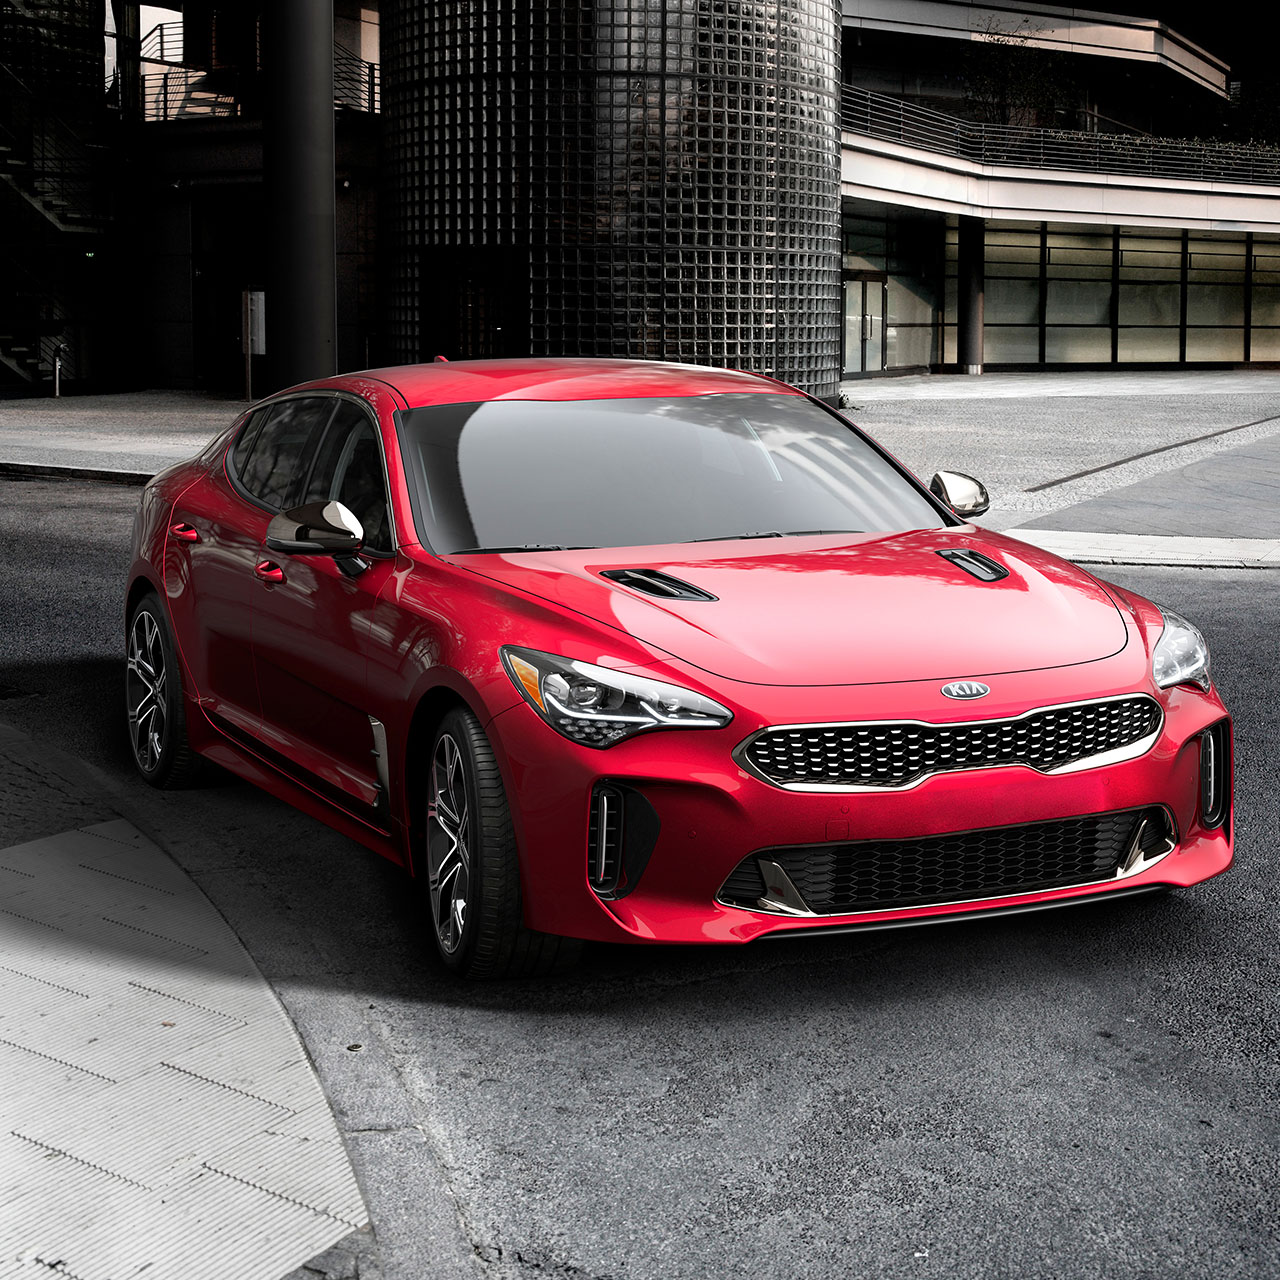 2018 Kia Stinger At Miami Lakes Automall